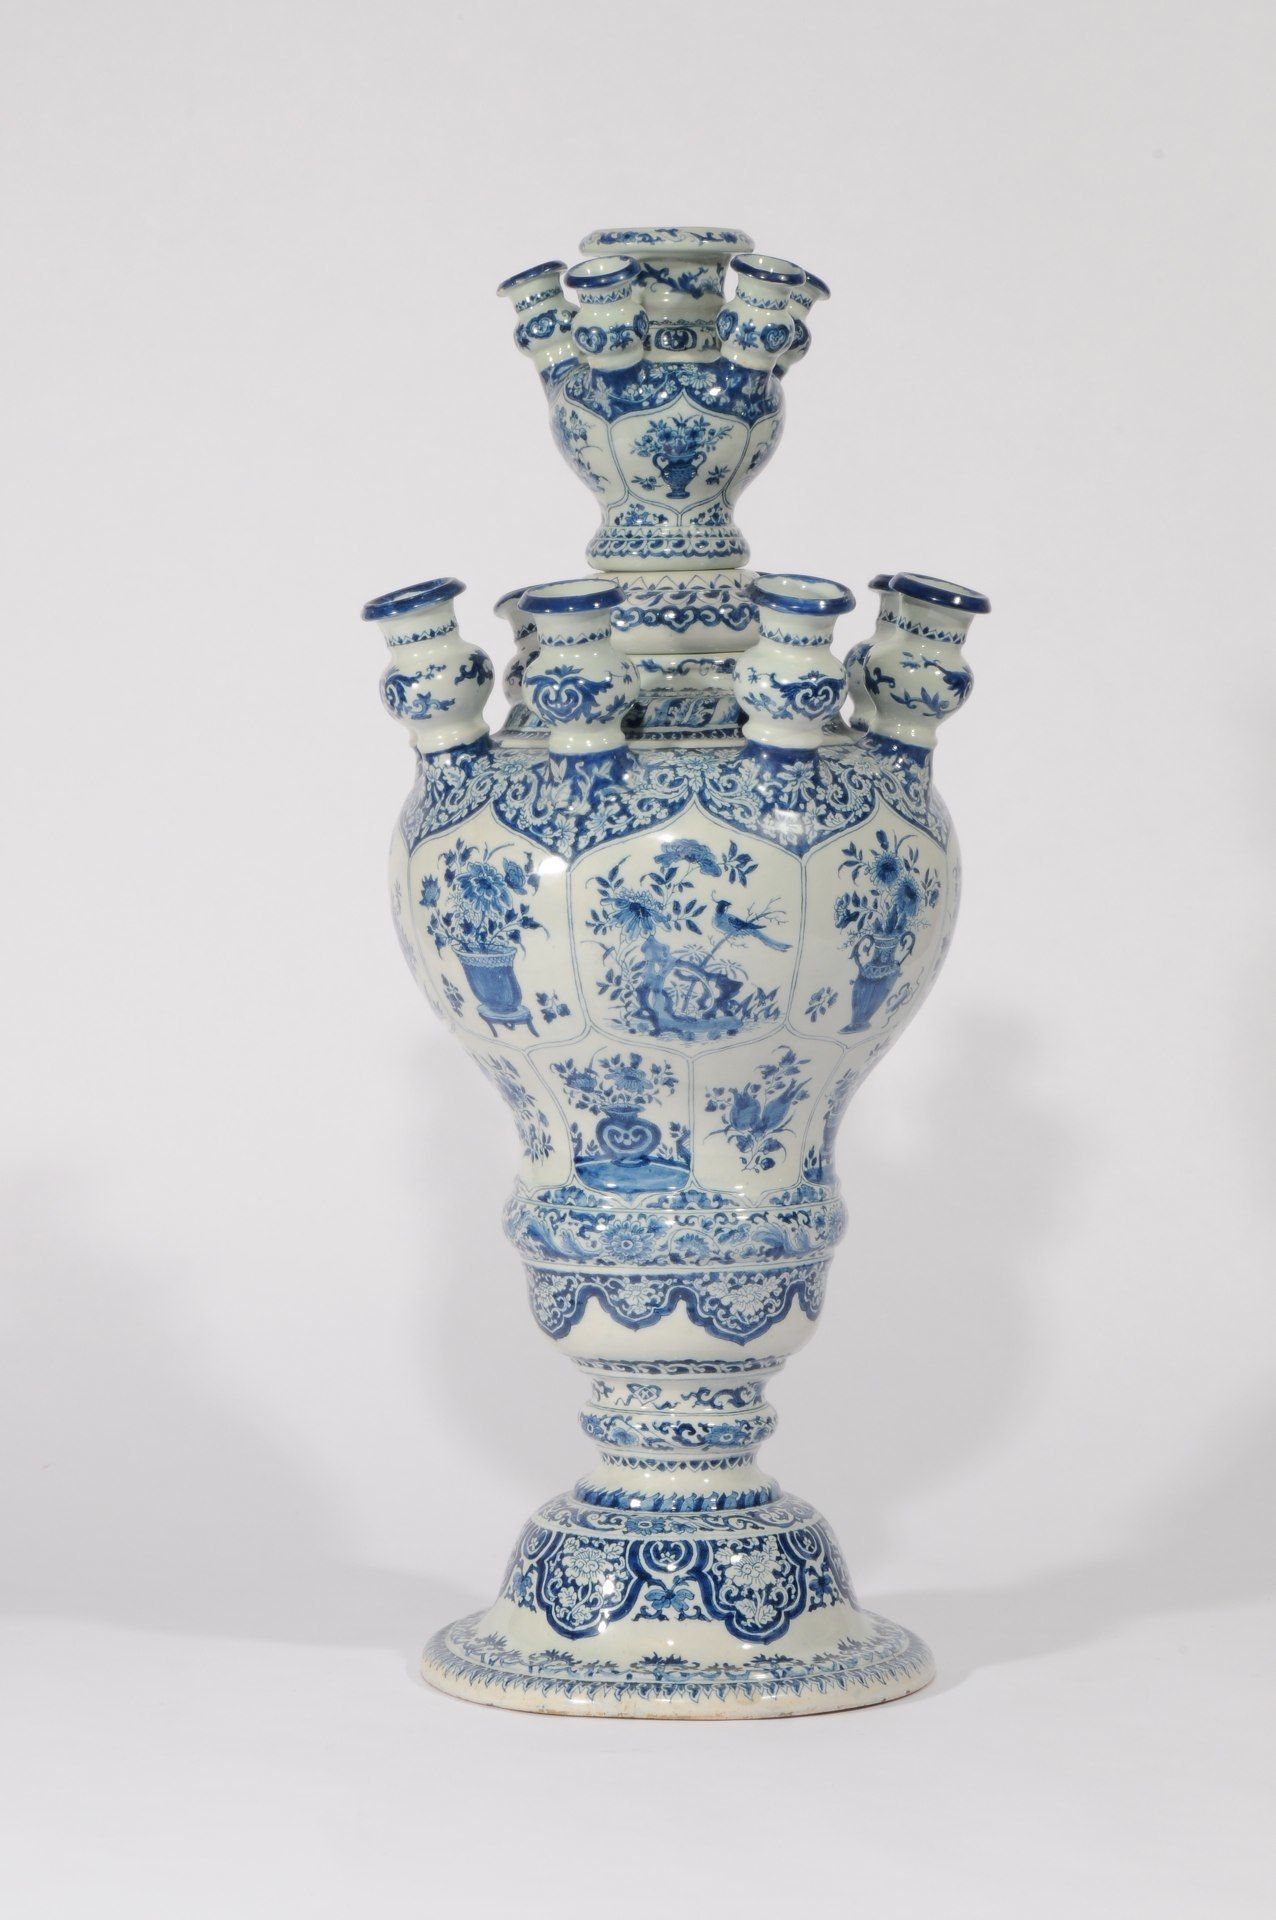 Collection item d9012 blue and white large tulip vase delft blue and white large tulip vase delft circa 1720 height reviewsmspy